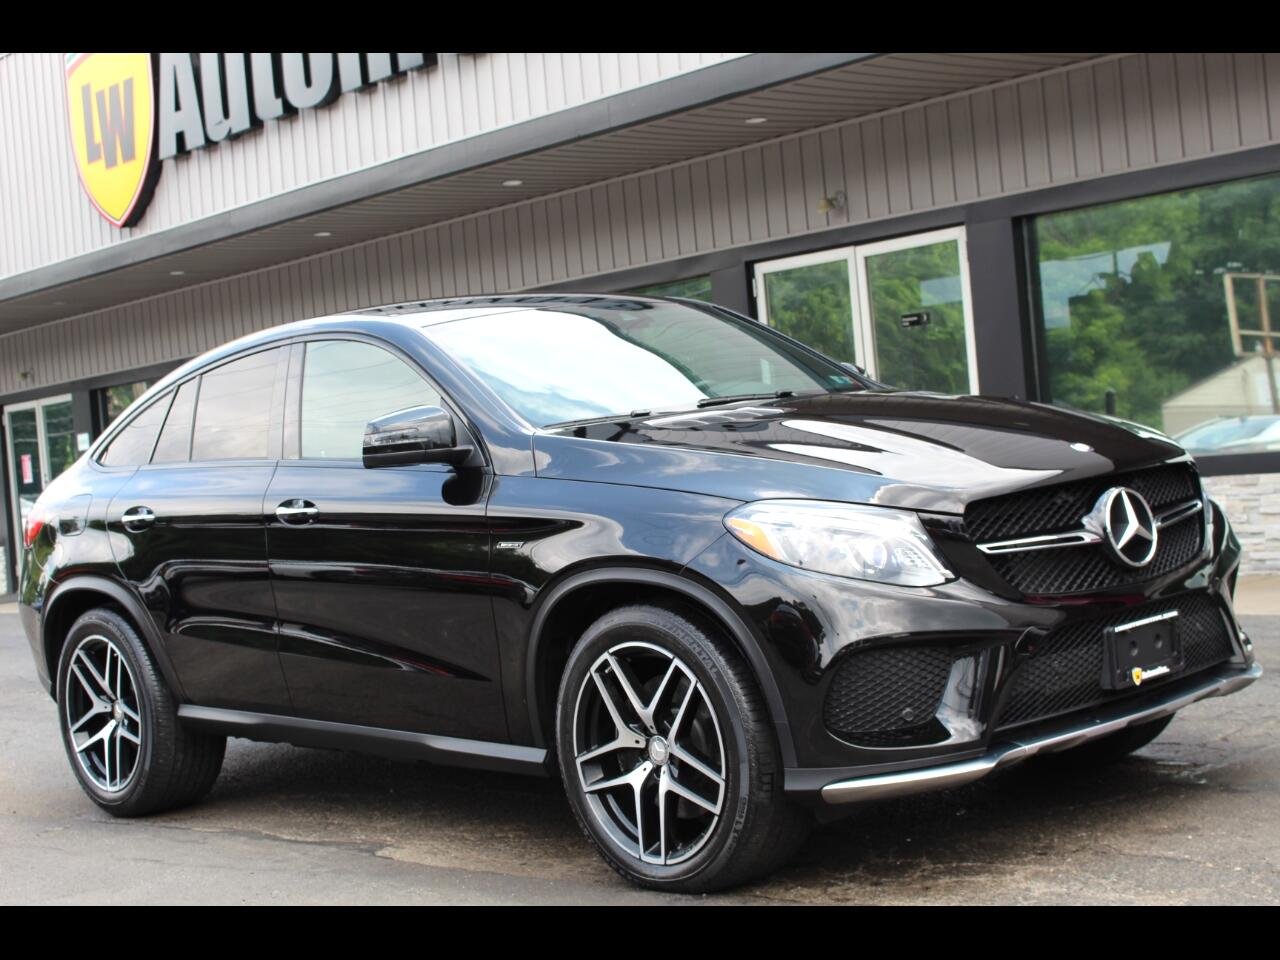 2016 Mercedes-Benz GLE Class AMG GLE450 4MATIC